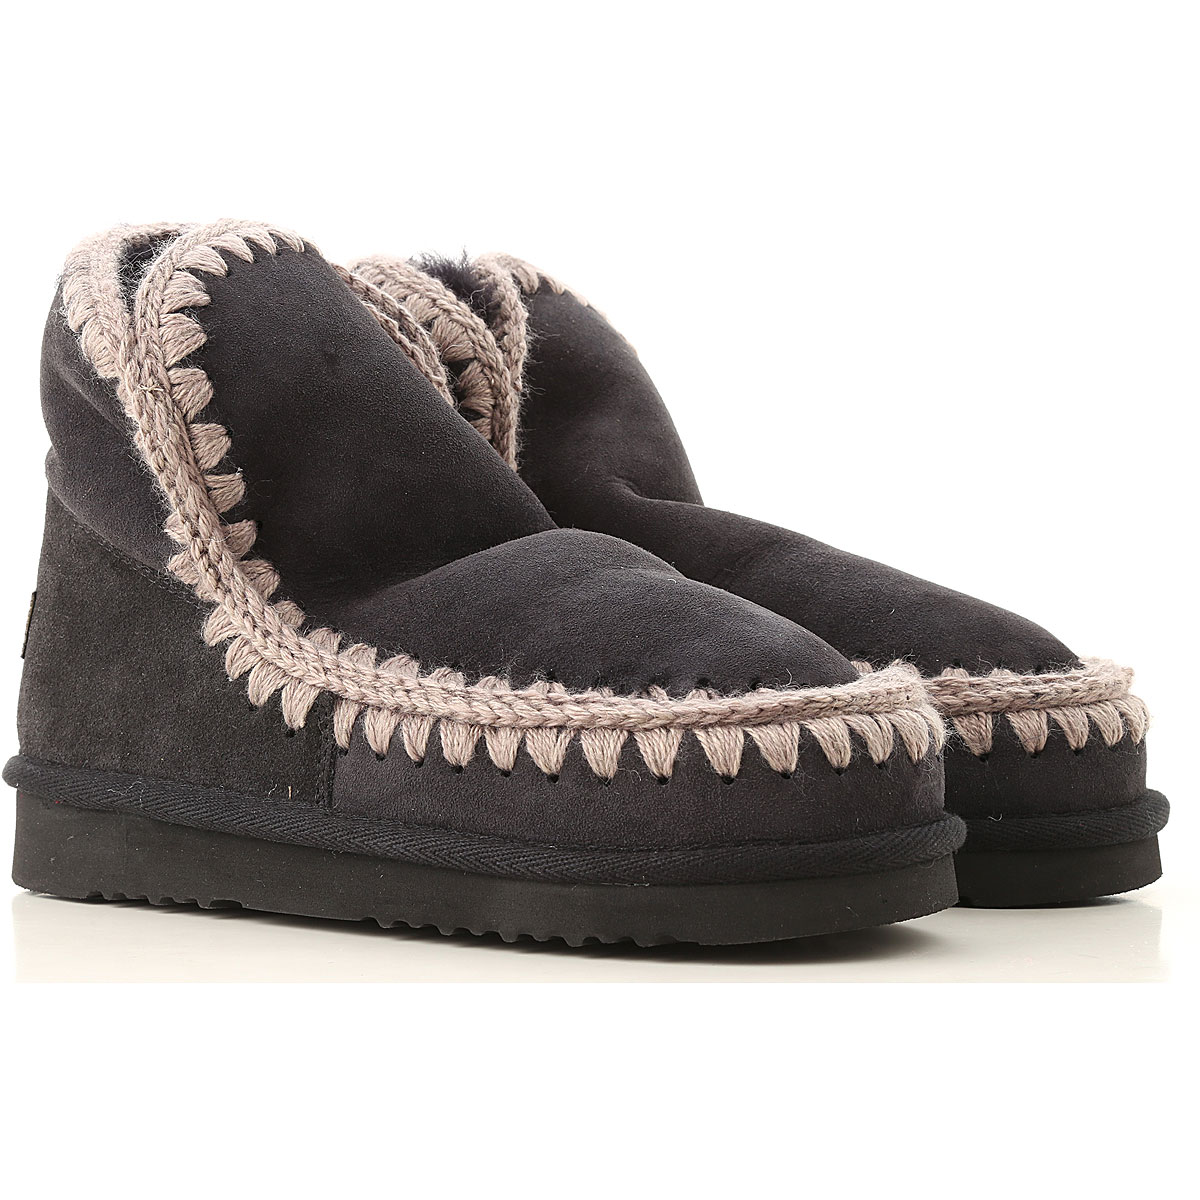 Image of Mou Boots for Women, Booties, Black, Suede leather, 2017, EUR 36 - UK 3 - USA 5.5 EUR 37 - UK 4 - USA 6.5 EUR 38 - UK 5 - USA 7.5 EUR 39 - UK 6 - USA 8.5 EUR 40 - UK 7 - USA 9.5 EUR 41 - UK 8 - USA 10.5